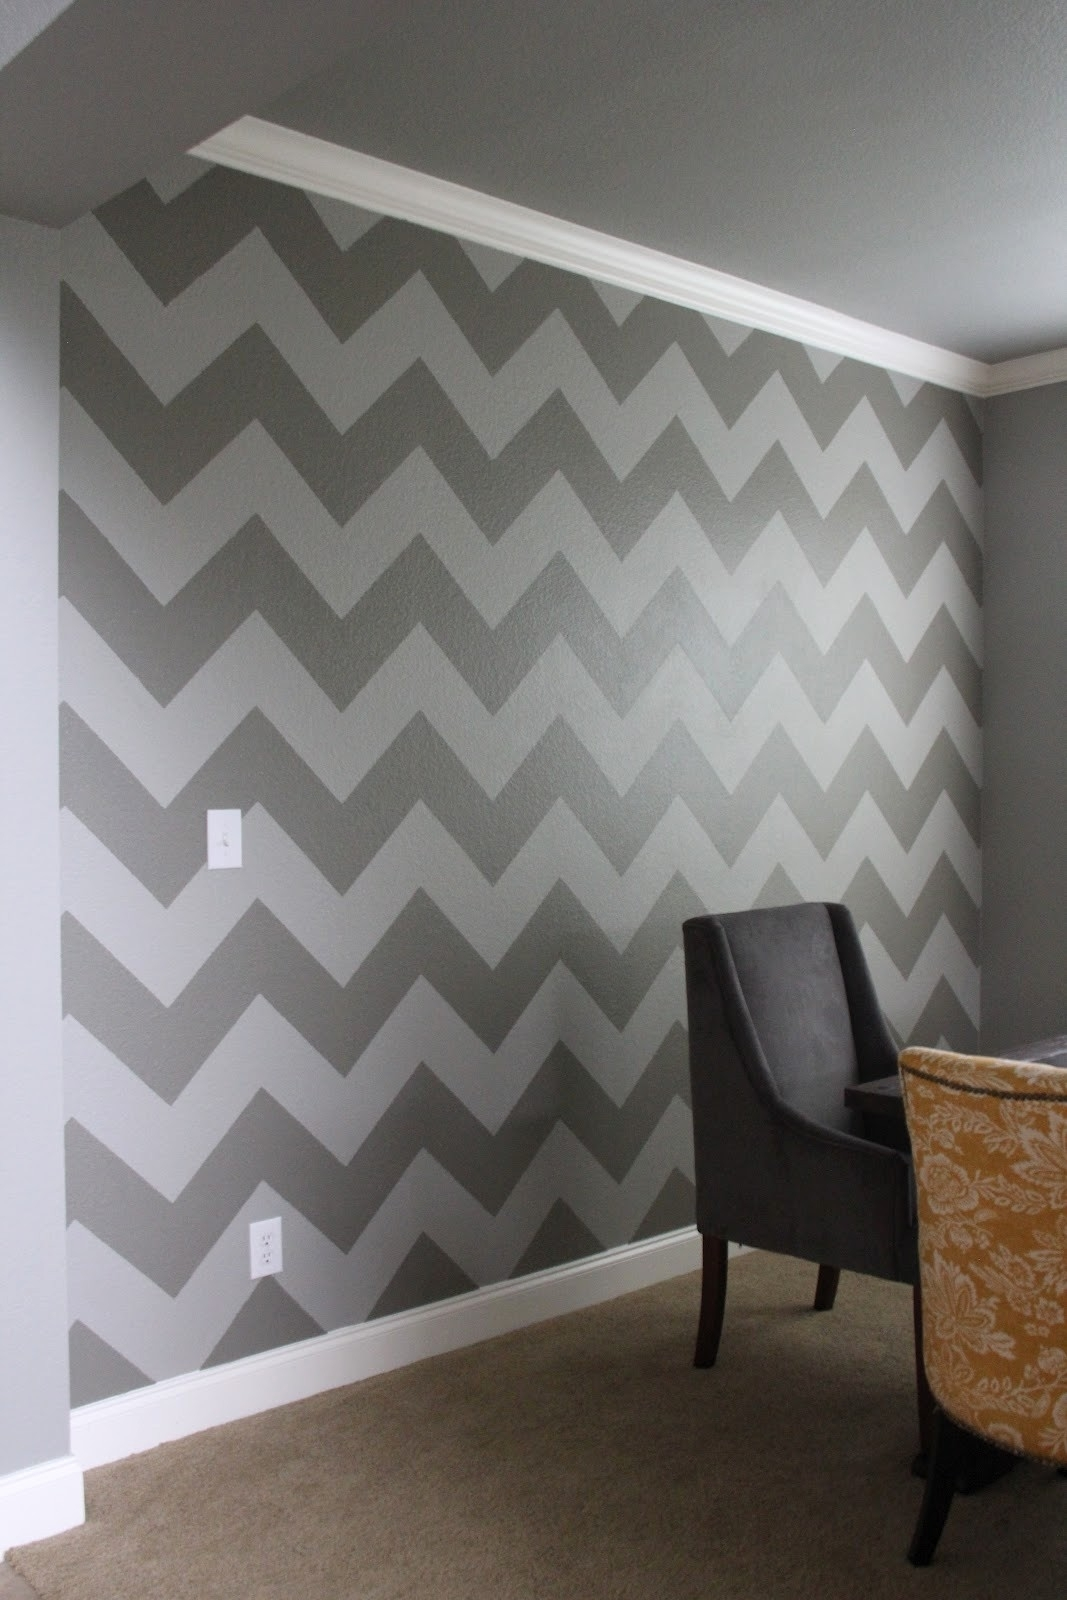 5 8 12 010 19 Diy Chevron Wall Art | Albertstreetmotors Pertaining To Chevron Wall Art (Photo 13 of 20)